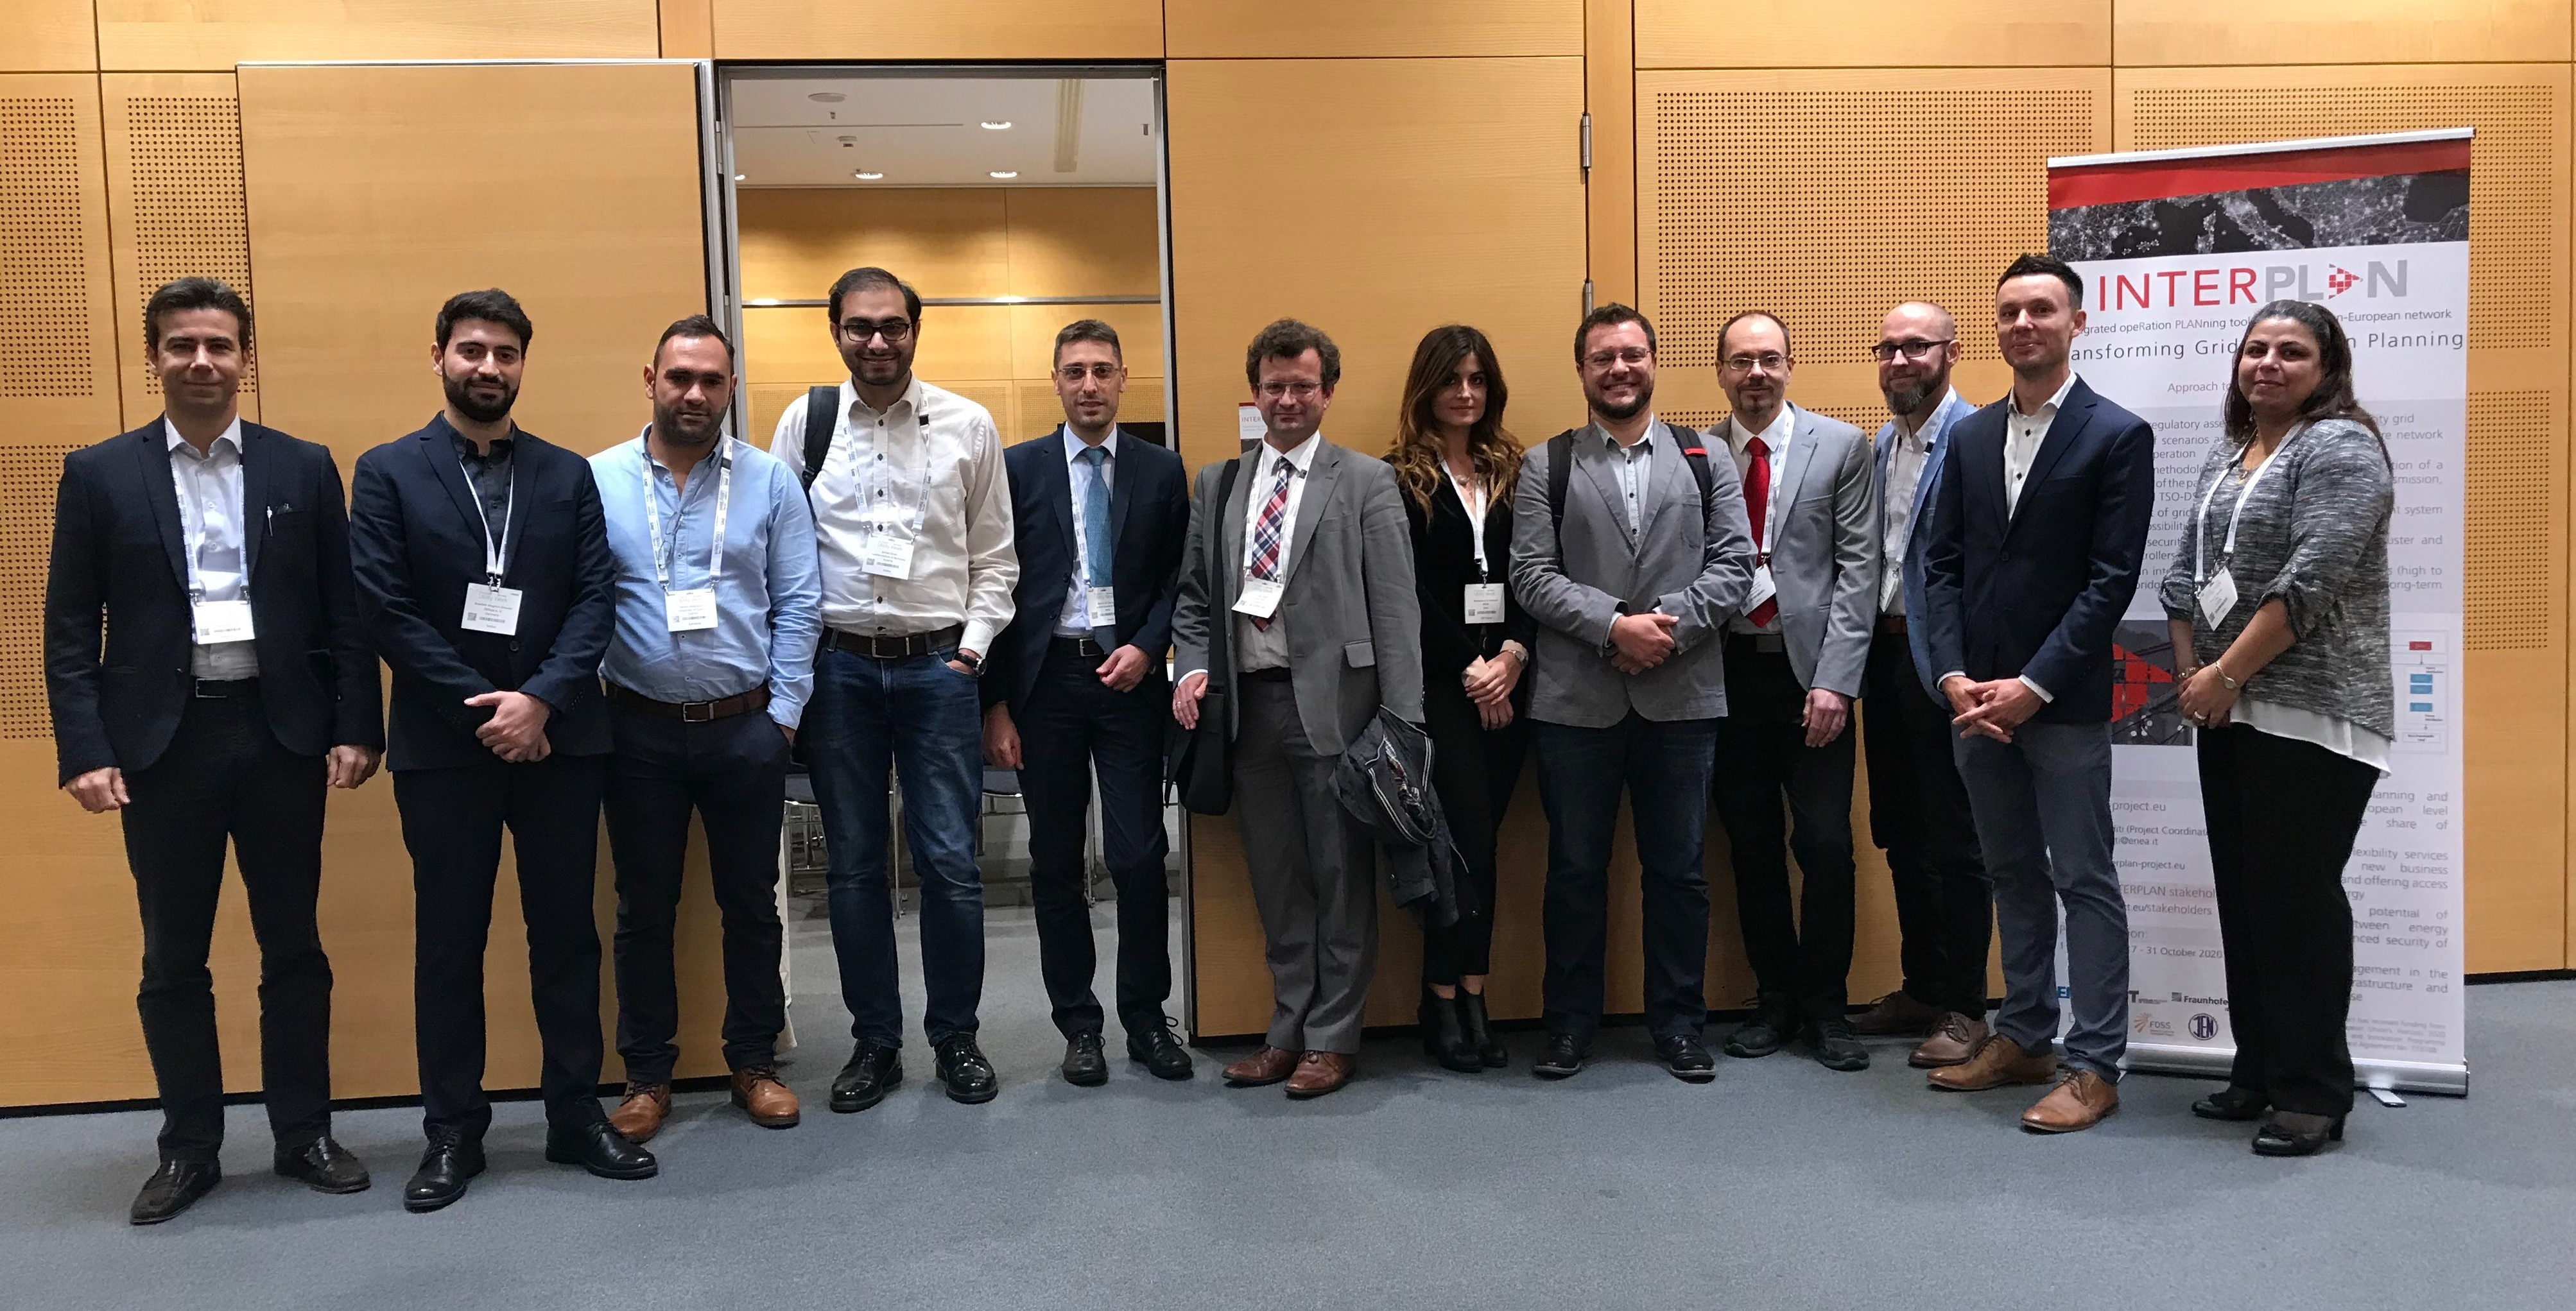 Stakeholder Workshop at European Utility Week 2018